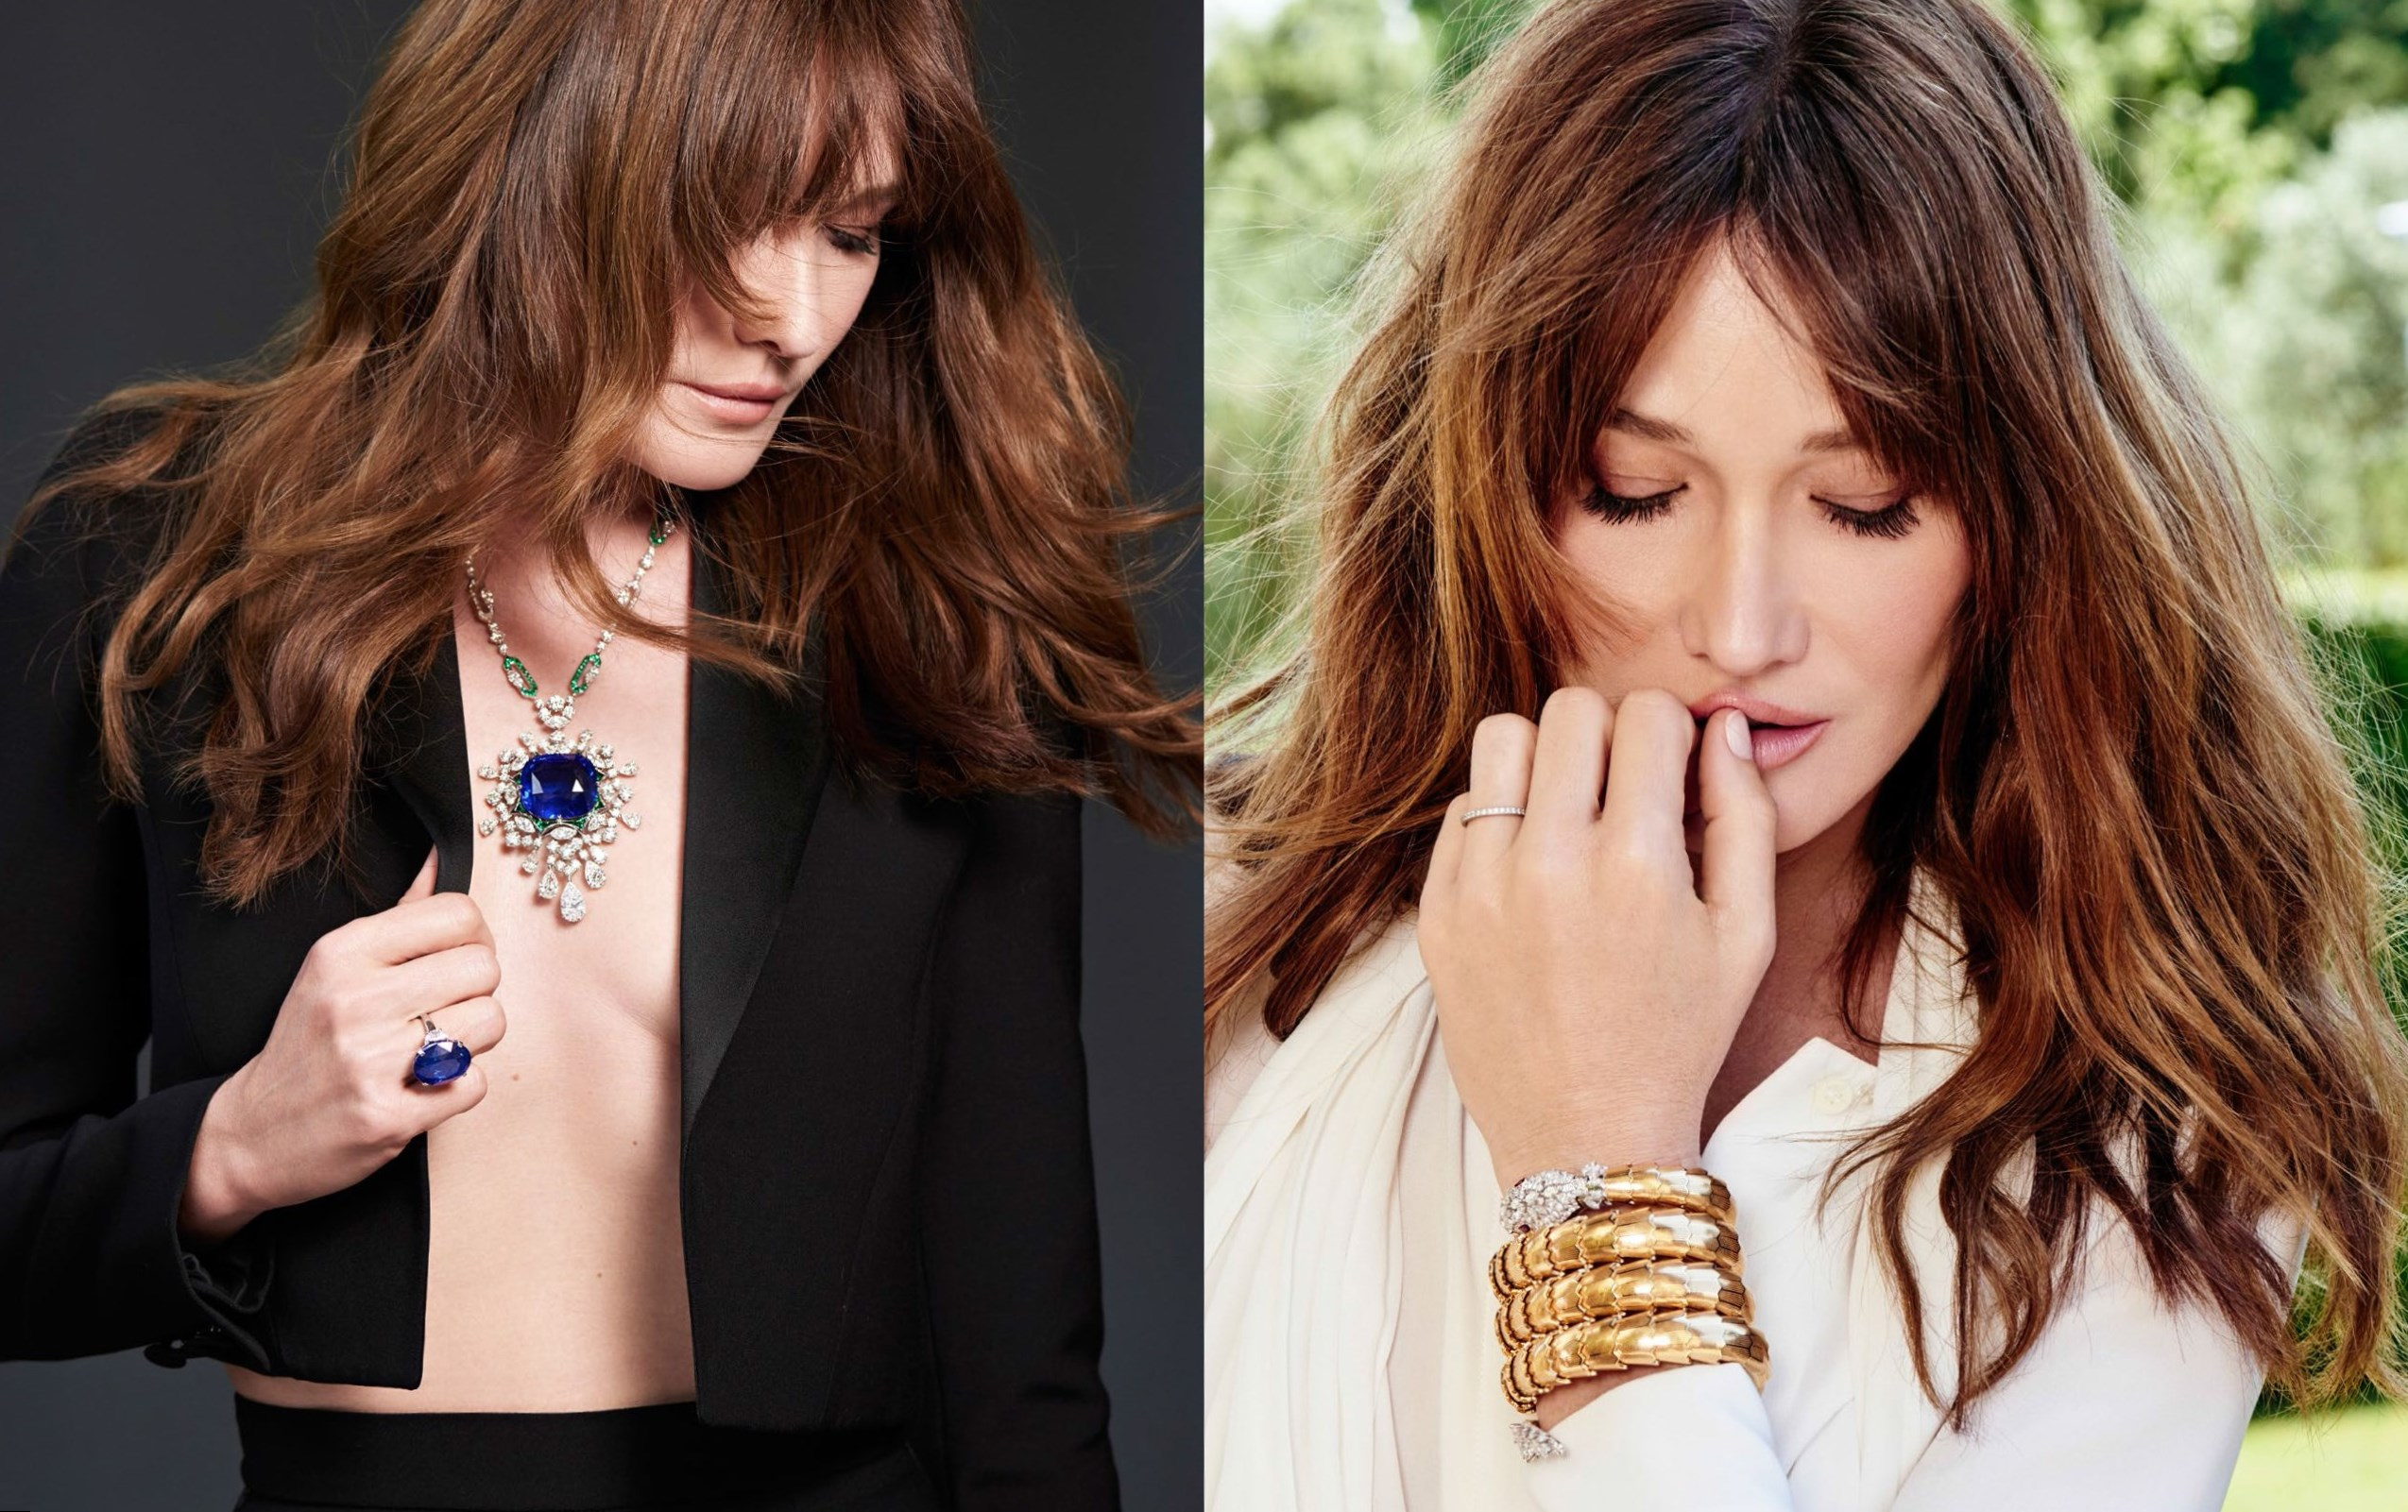 Carla bruni weight height and age we know it all for Bruni arredamento